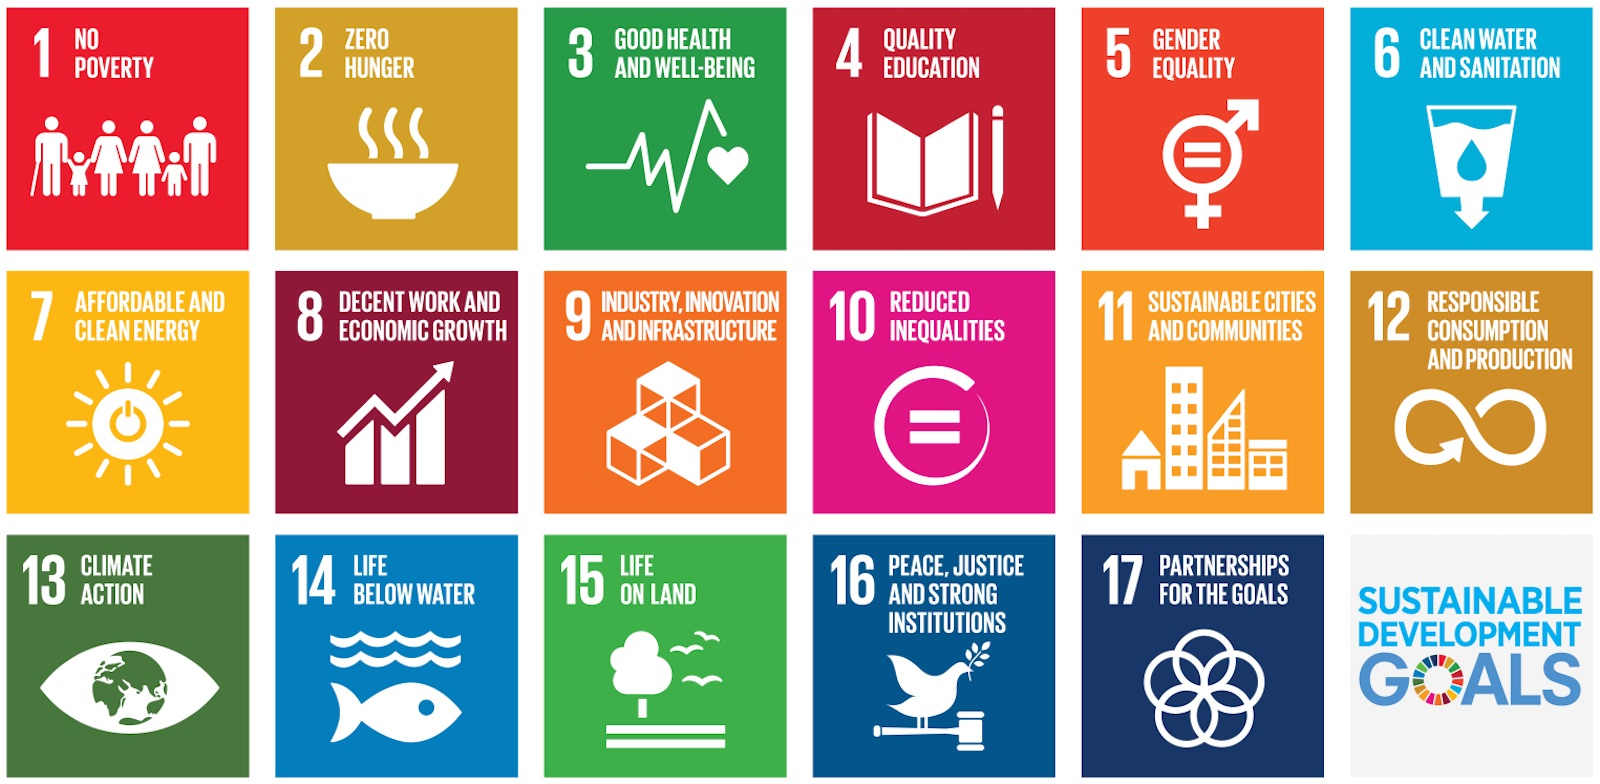 https://www.greenroomvoice.com/wp-content/uploads/2019/10/sdgs-un-1.jpg